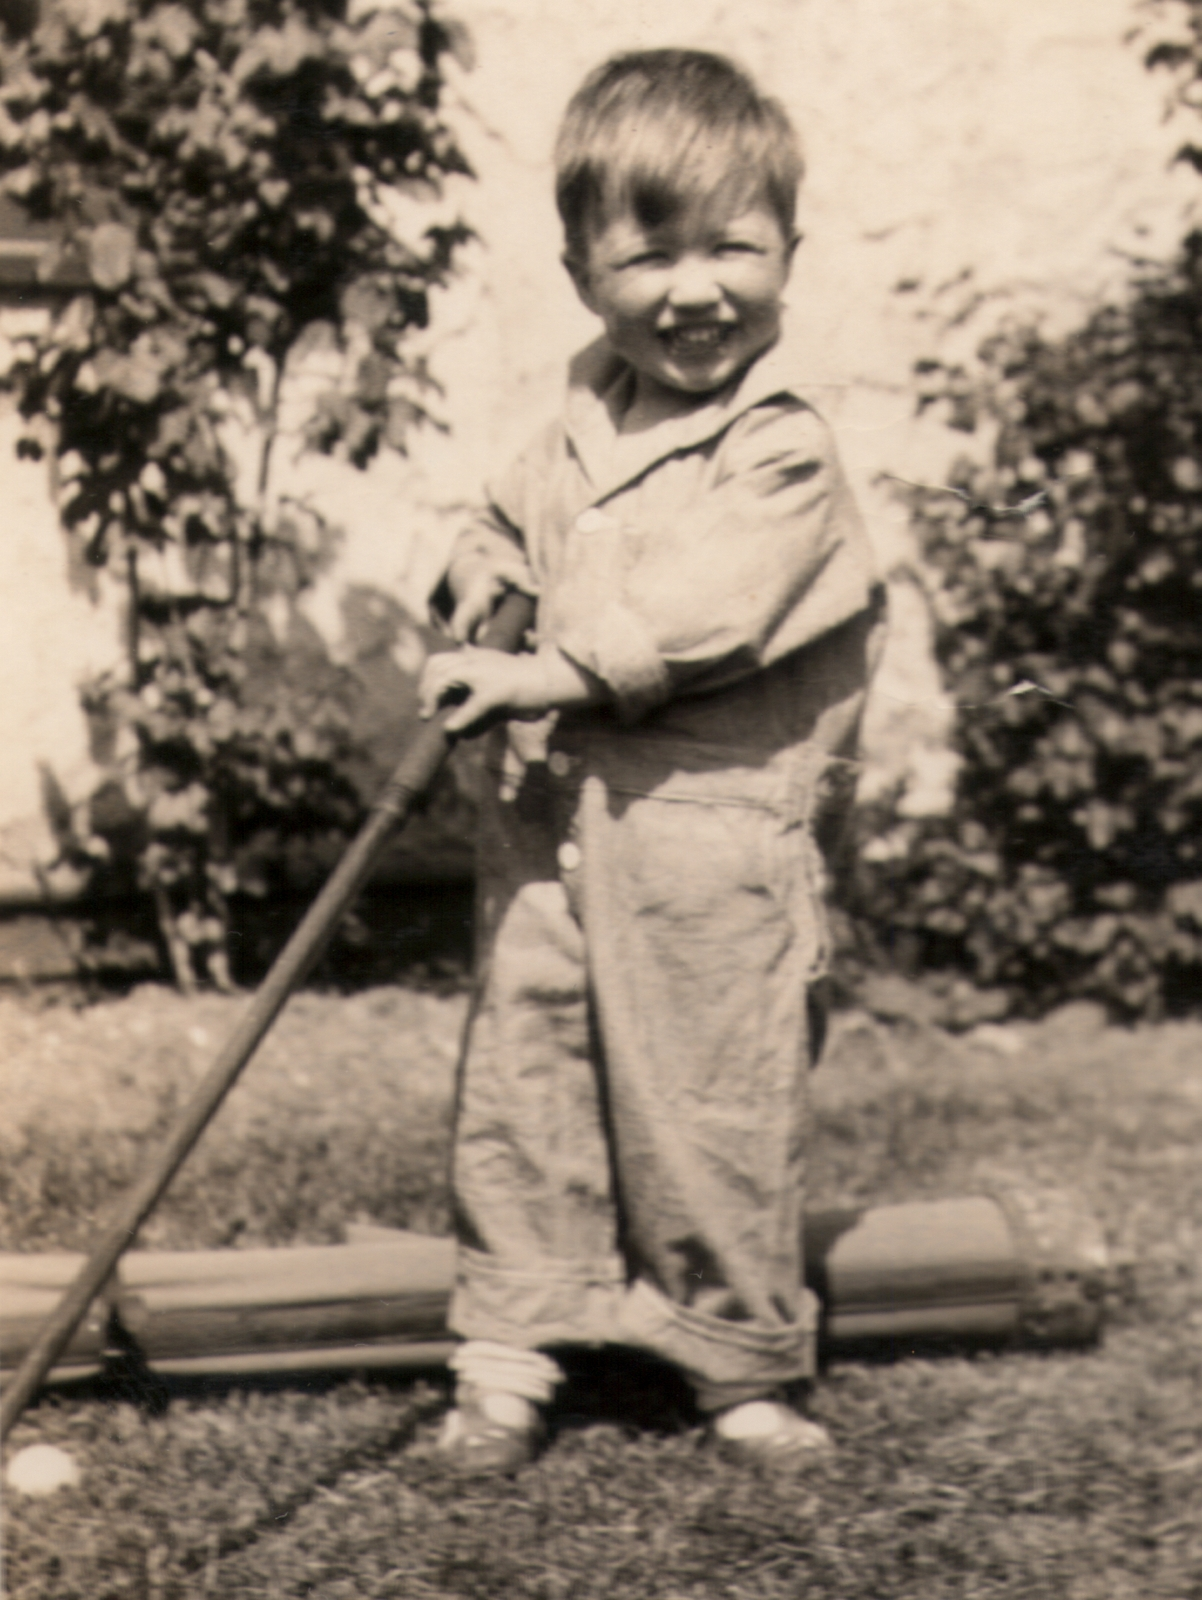 My father trying golf in 1927, with a corner of my grandmother's rose garden in the background.